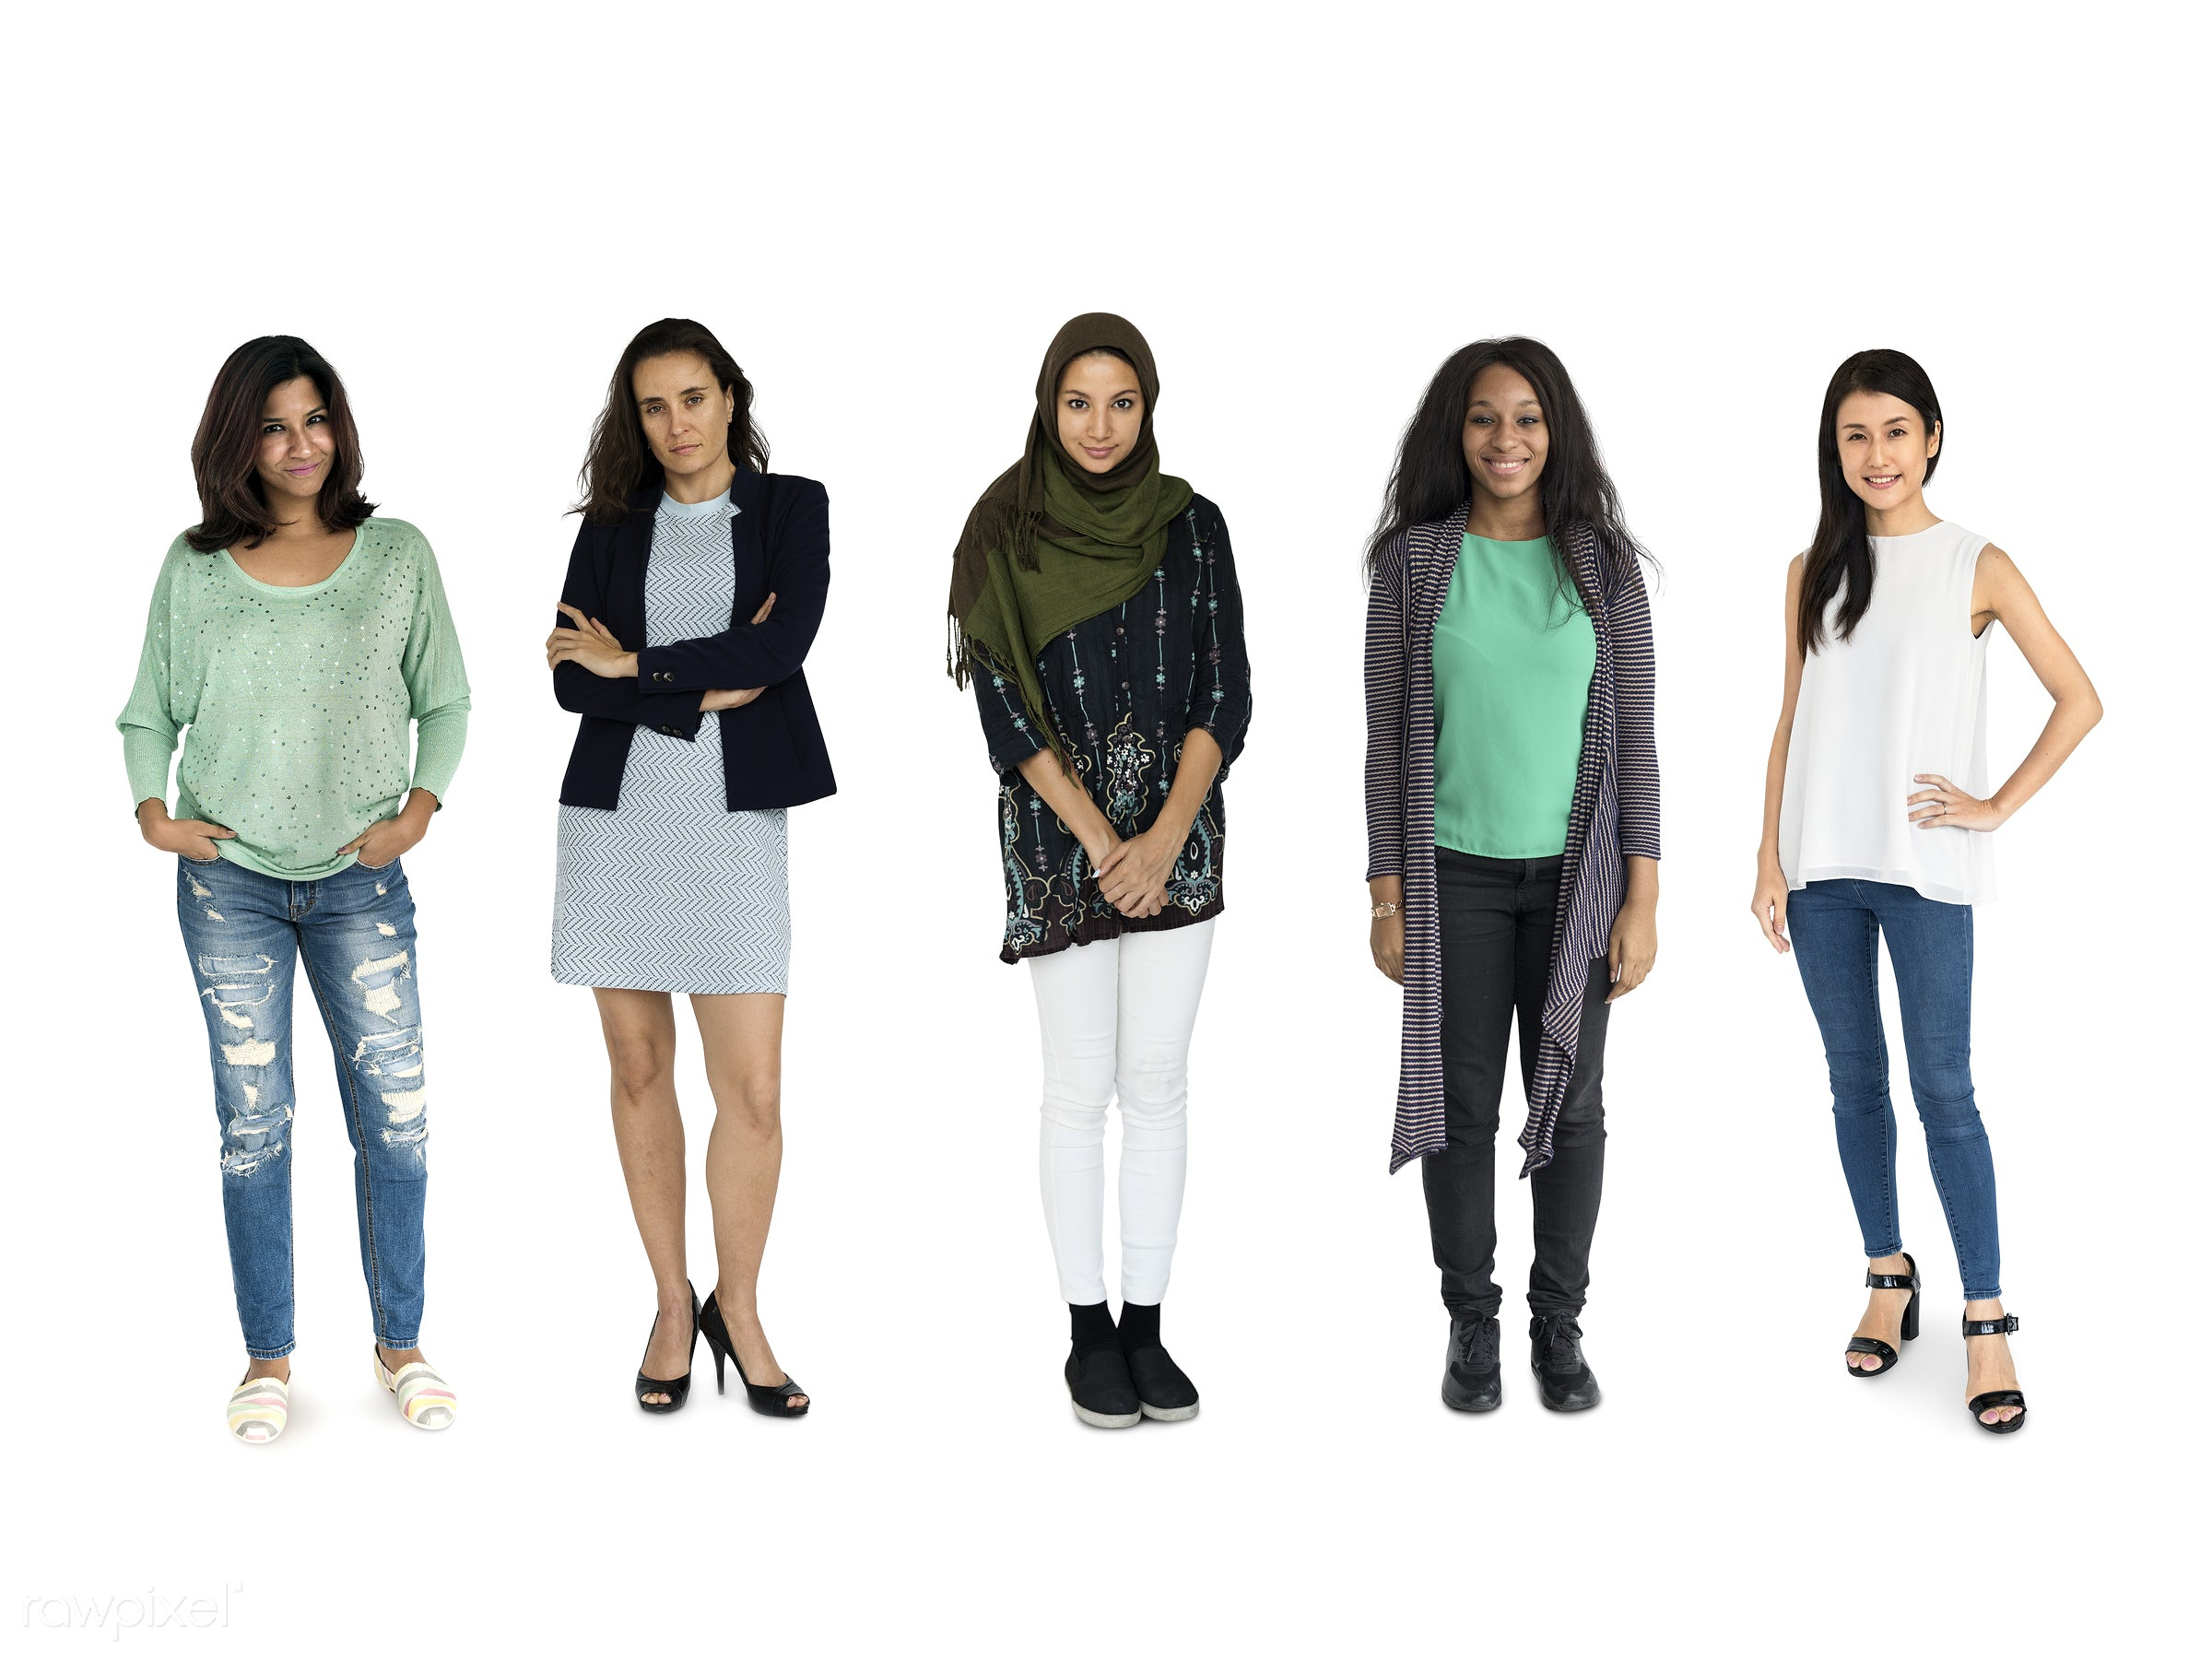 Diverse people set - studio, person, diverse, set, retired, little, collection, people, pretty, together, attraction,...